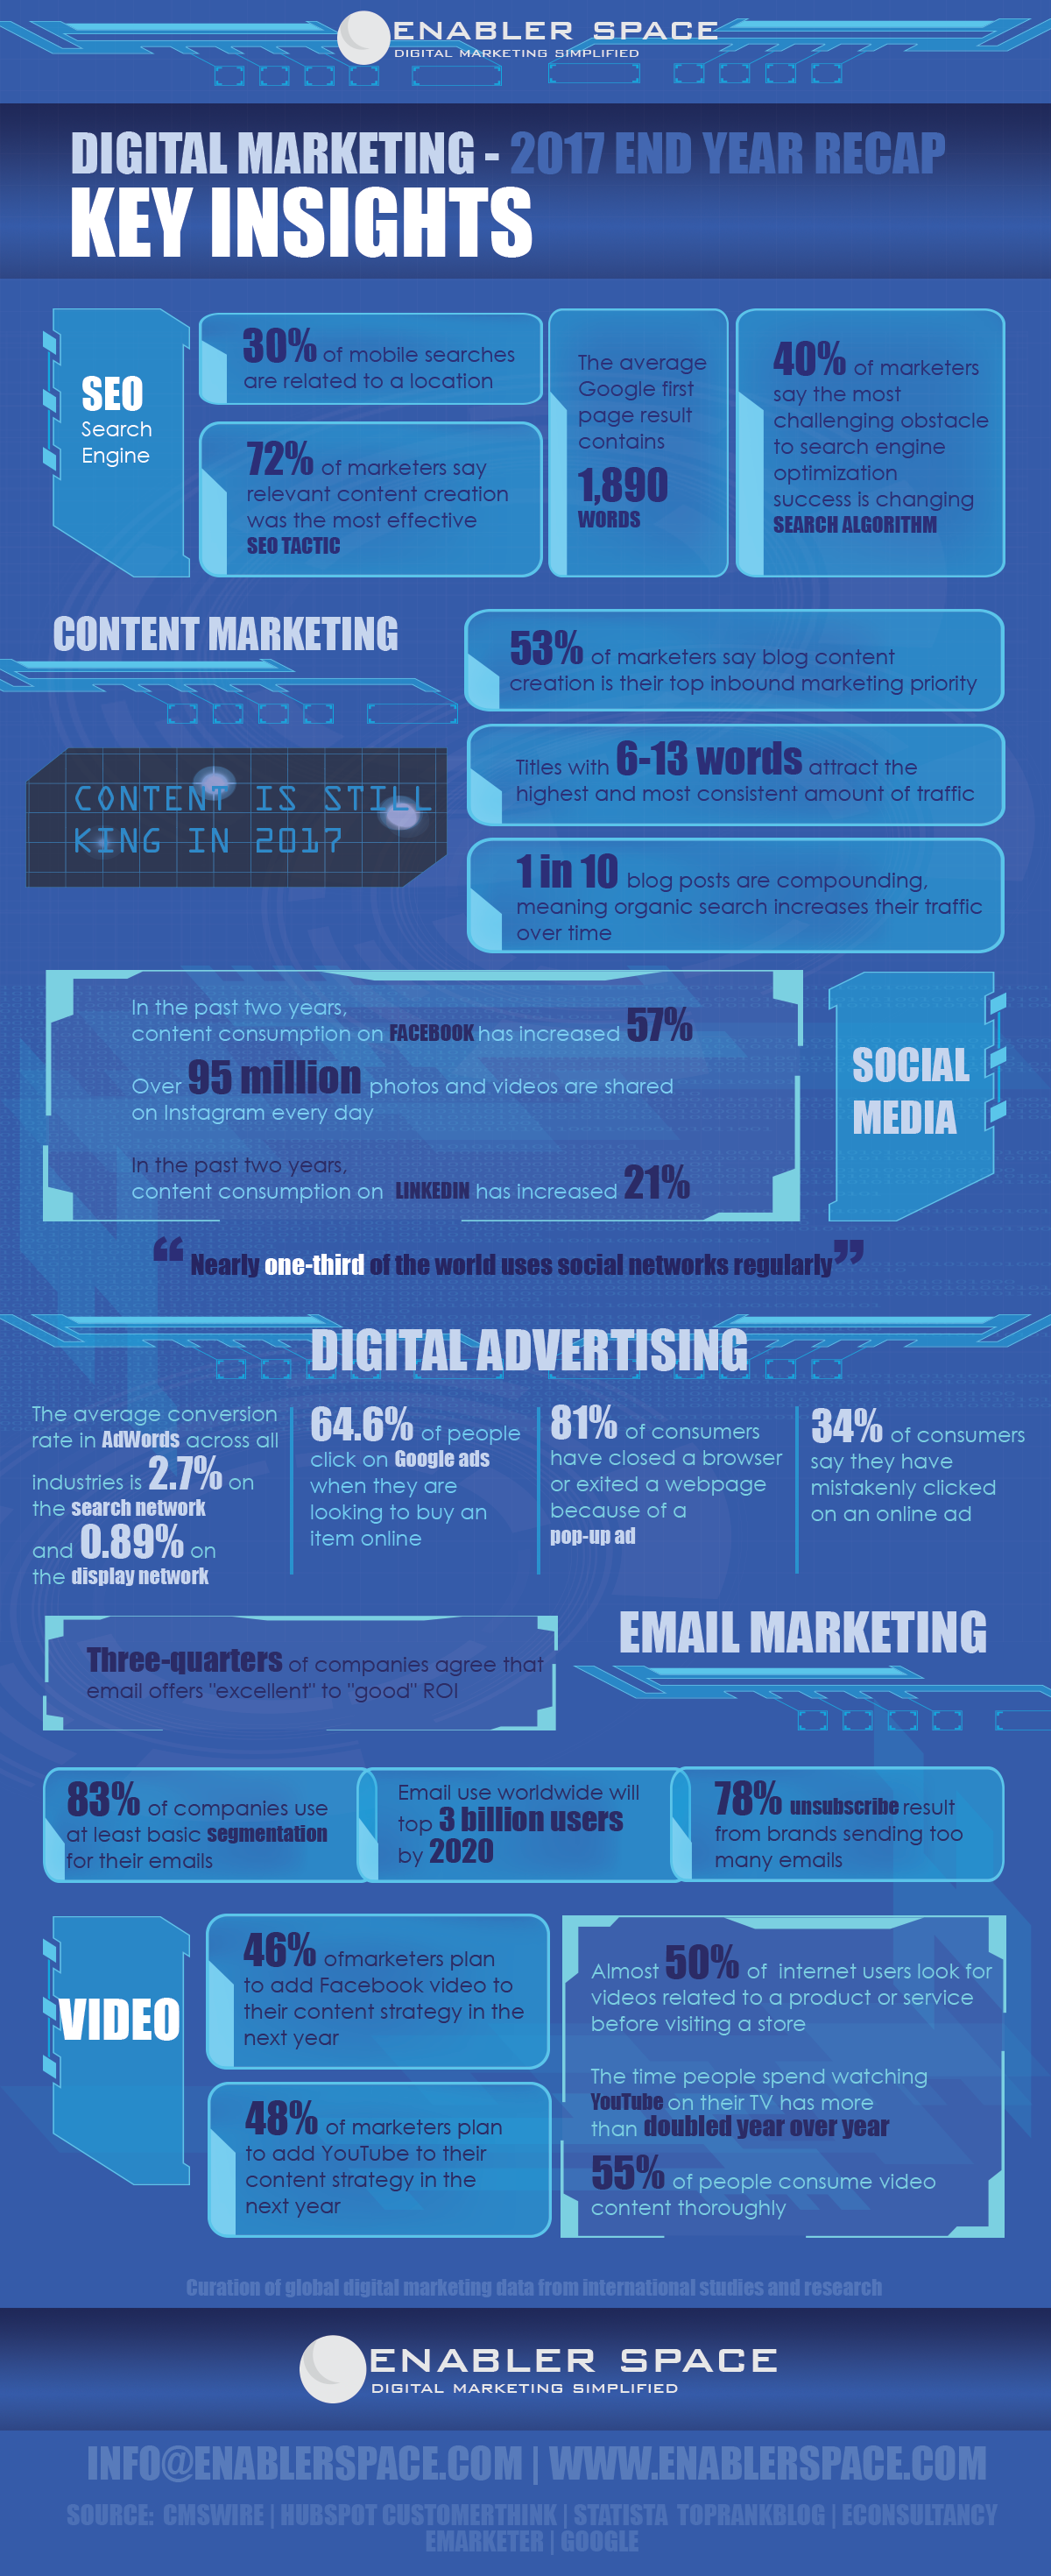 Digital Marketing Key Insights – 2017 End Year Recap - #infographic